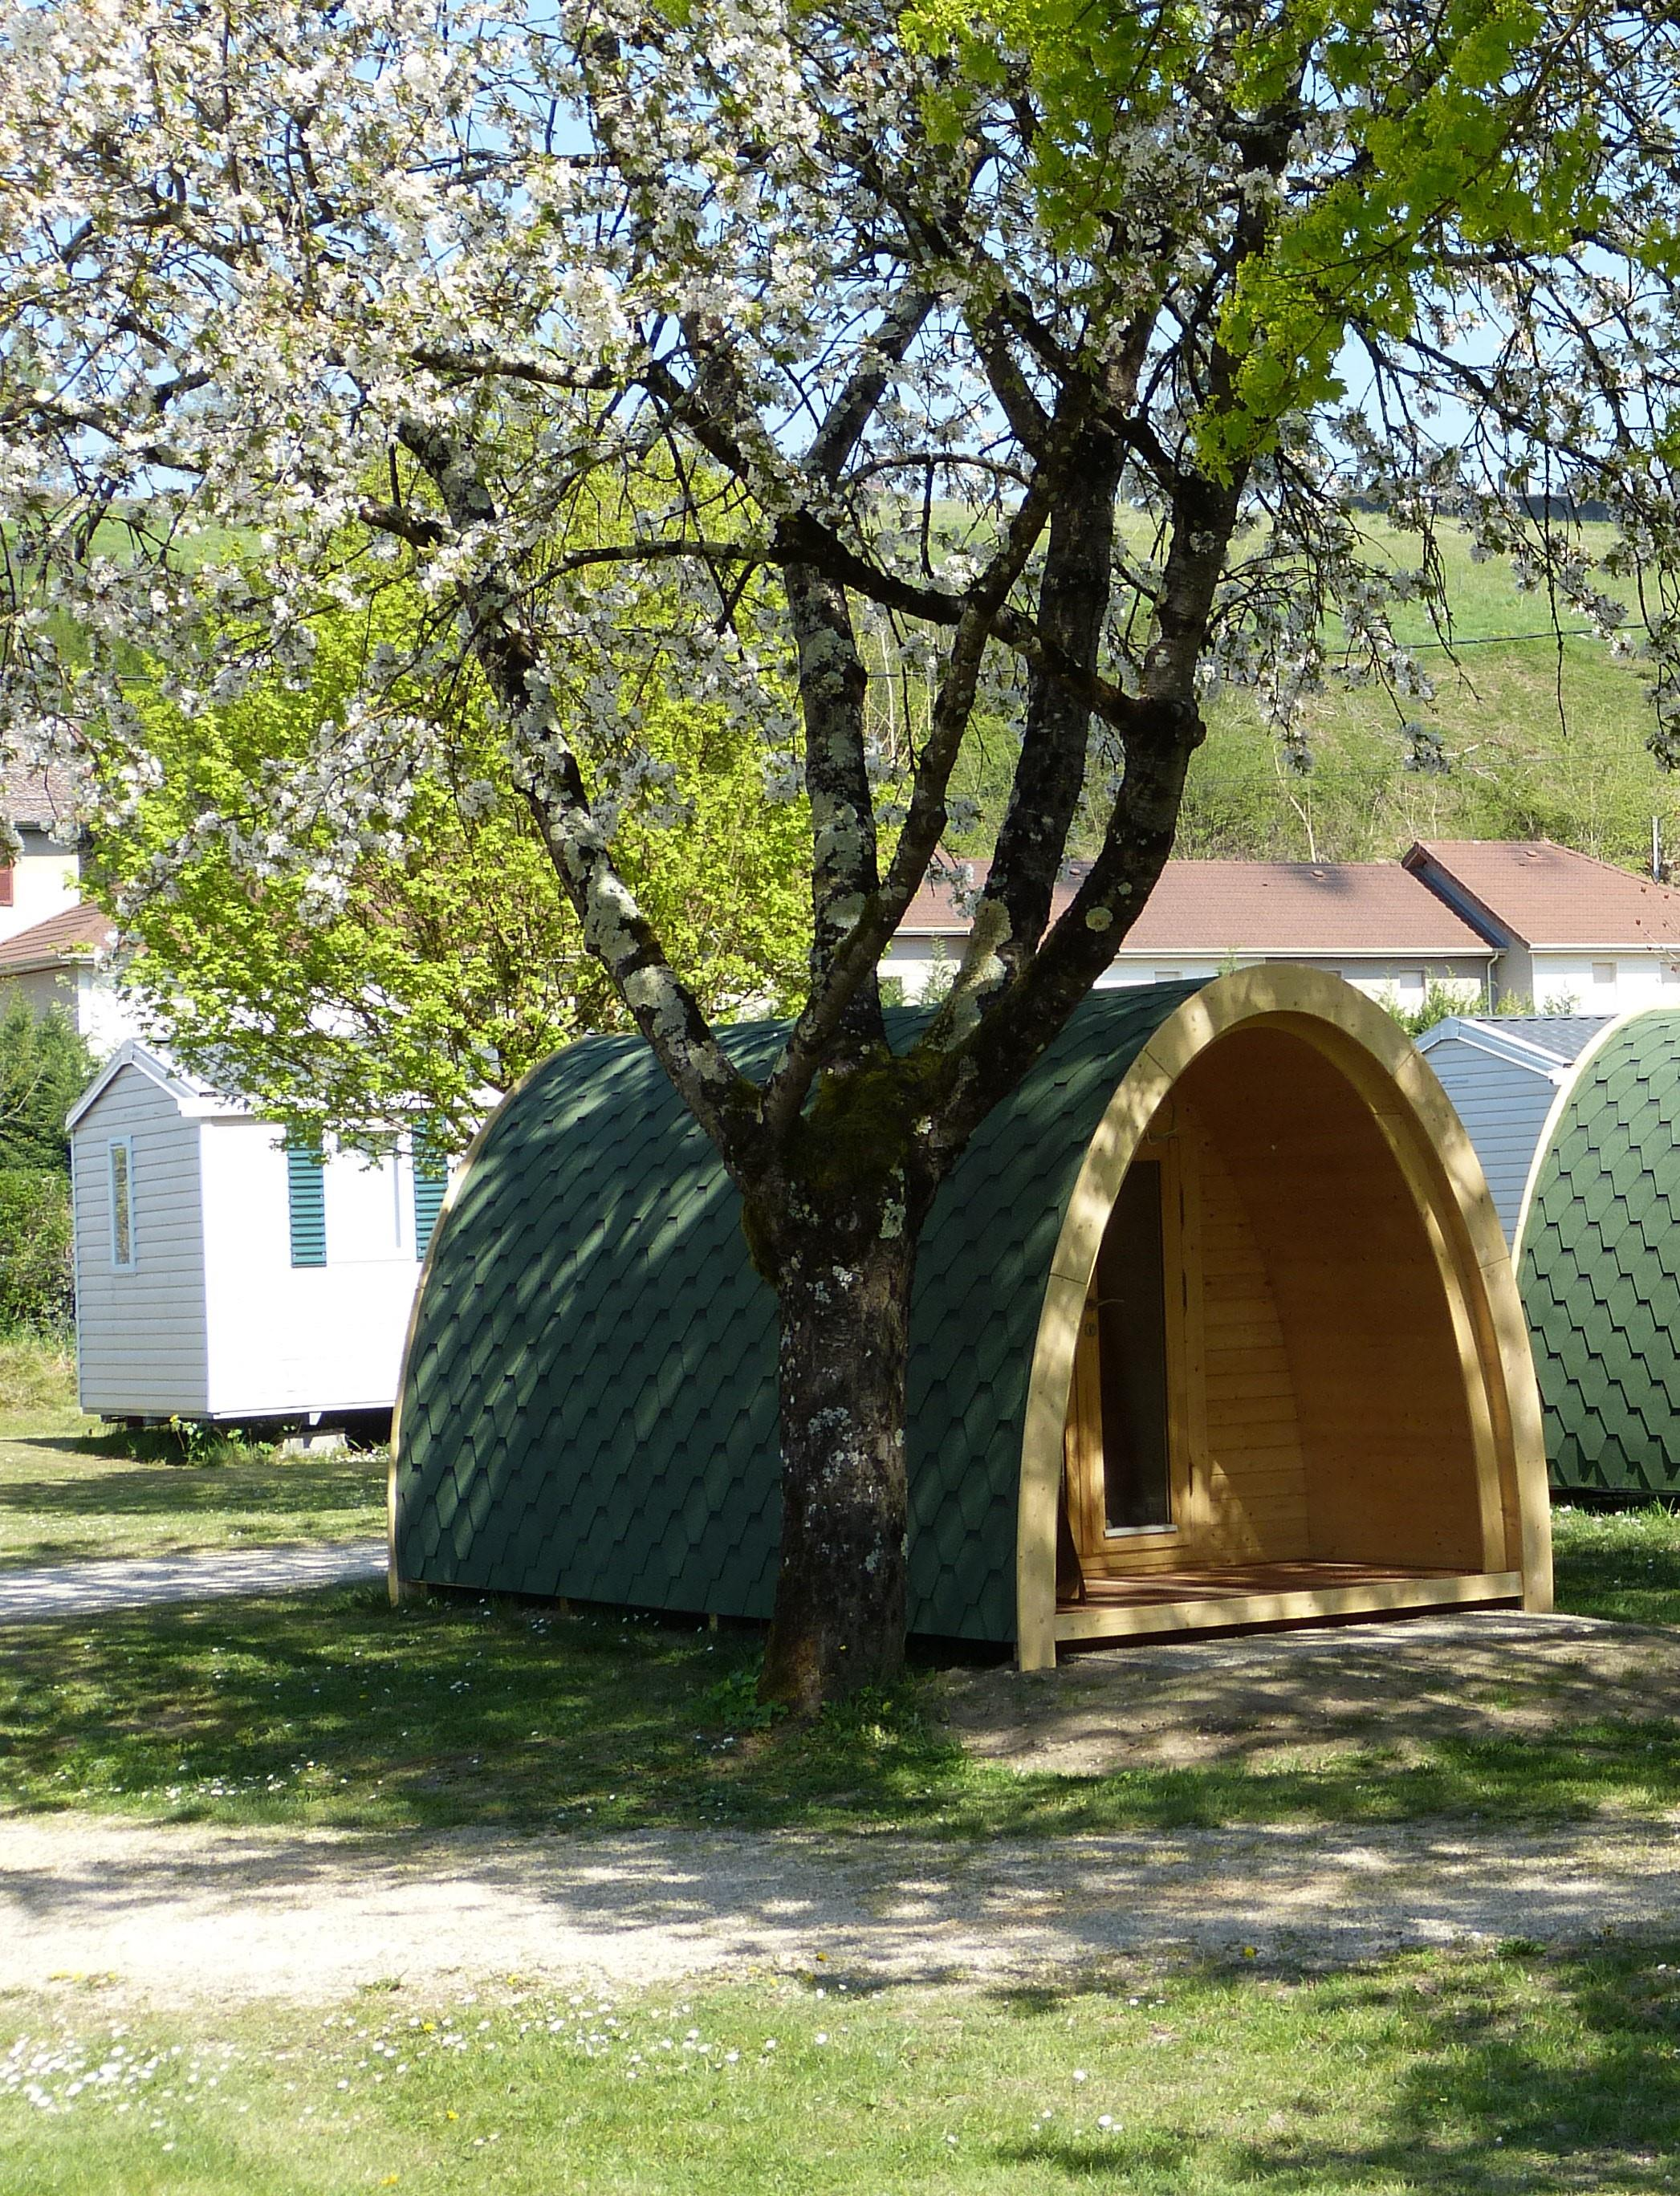 Accommodation - Wooden Chalet (Pod 2020) - Camping Les Bords du Guiers